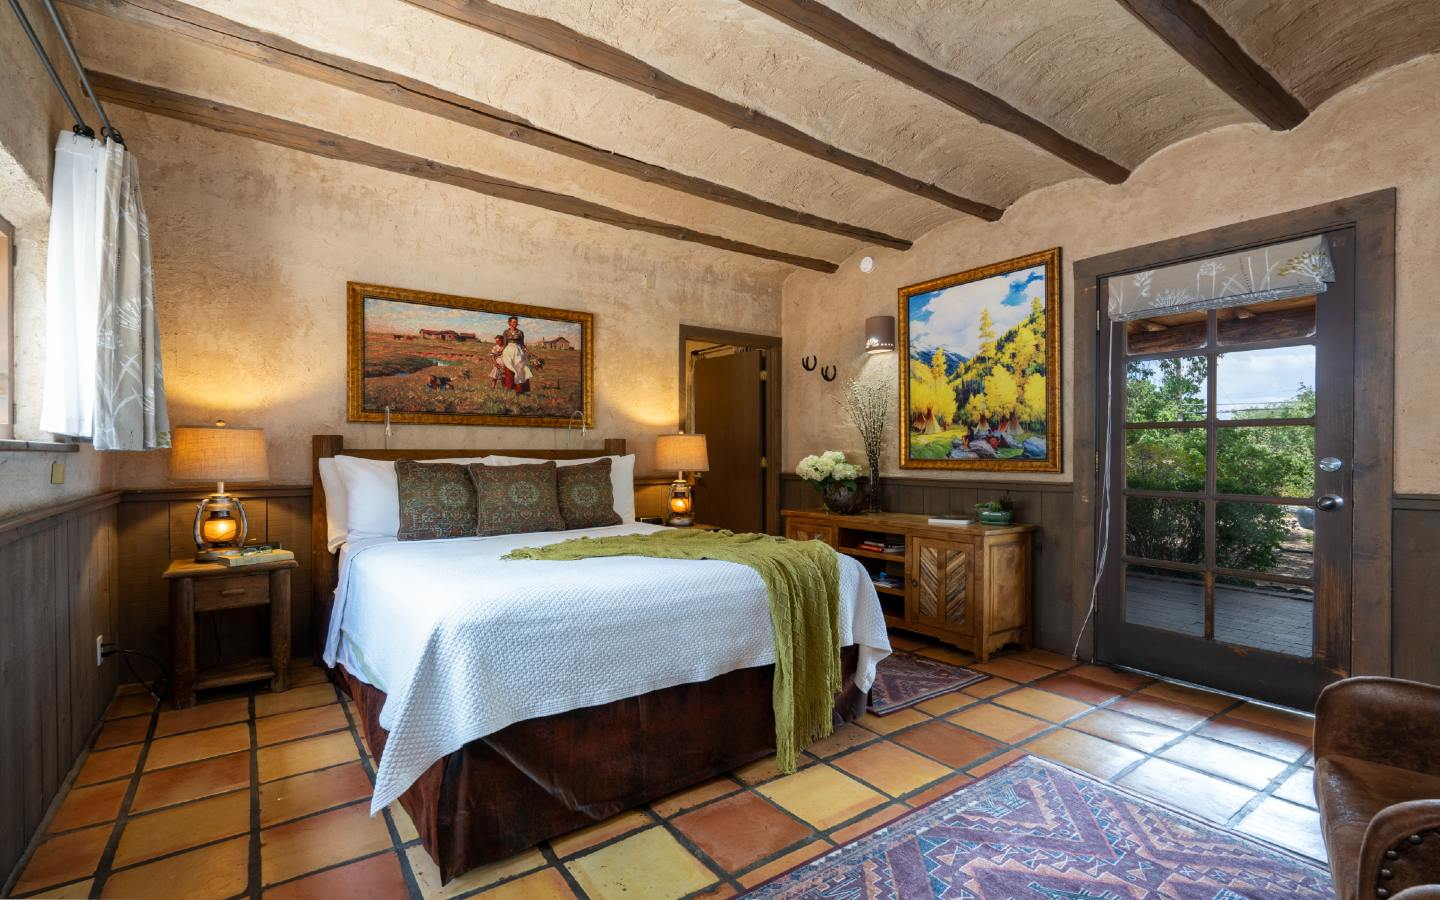 Queen sized bed, credenza, beautiful artwork and door leading to the garden in the Willa Cather guest Room